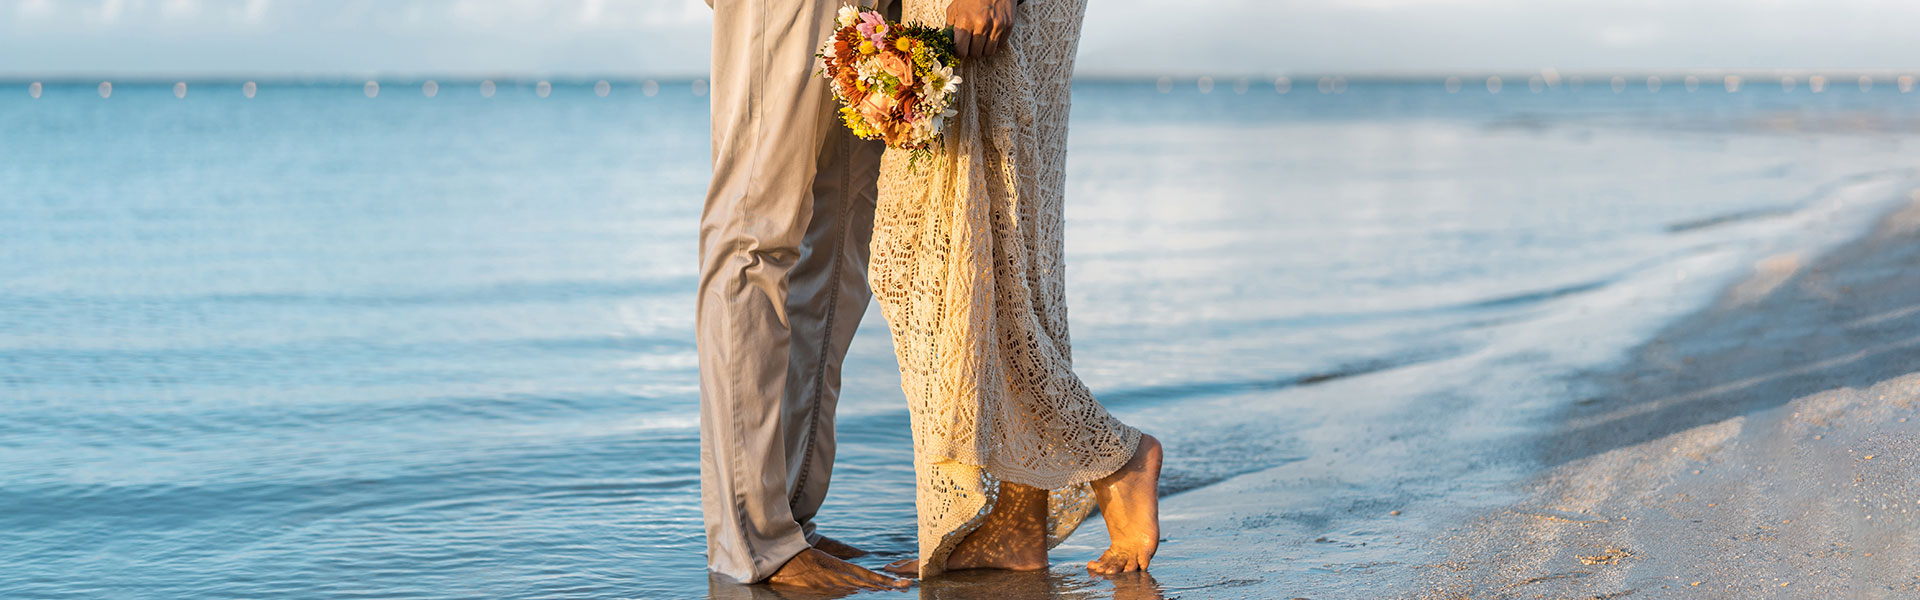 couple standing on the beach with feet in the water